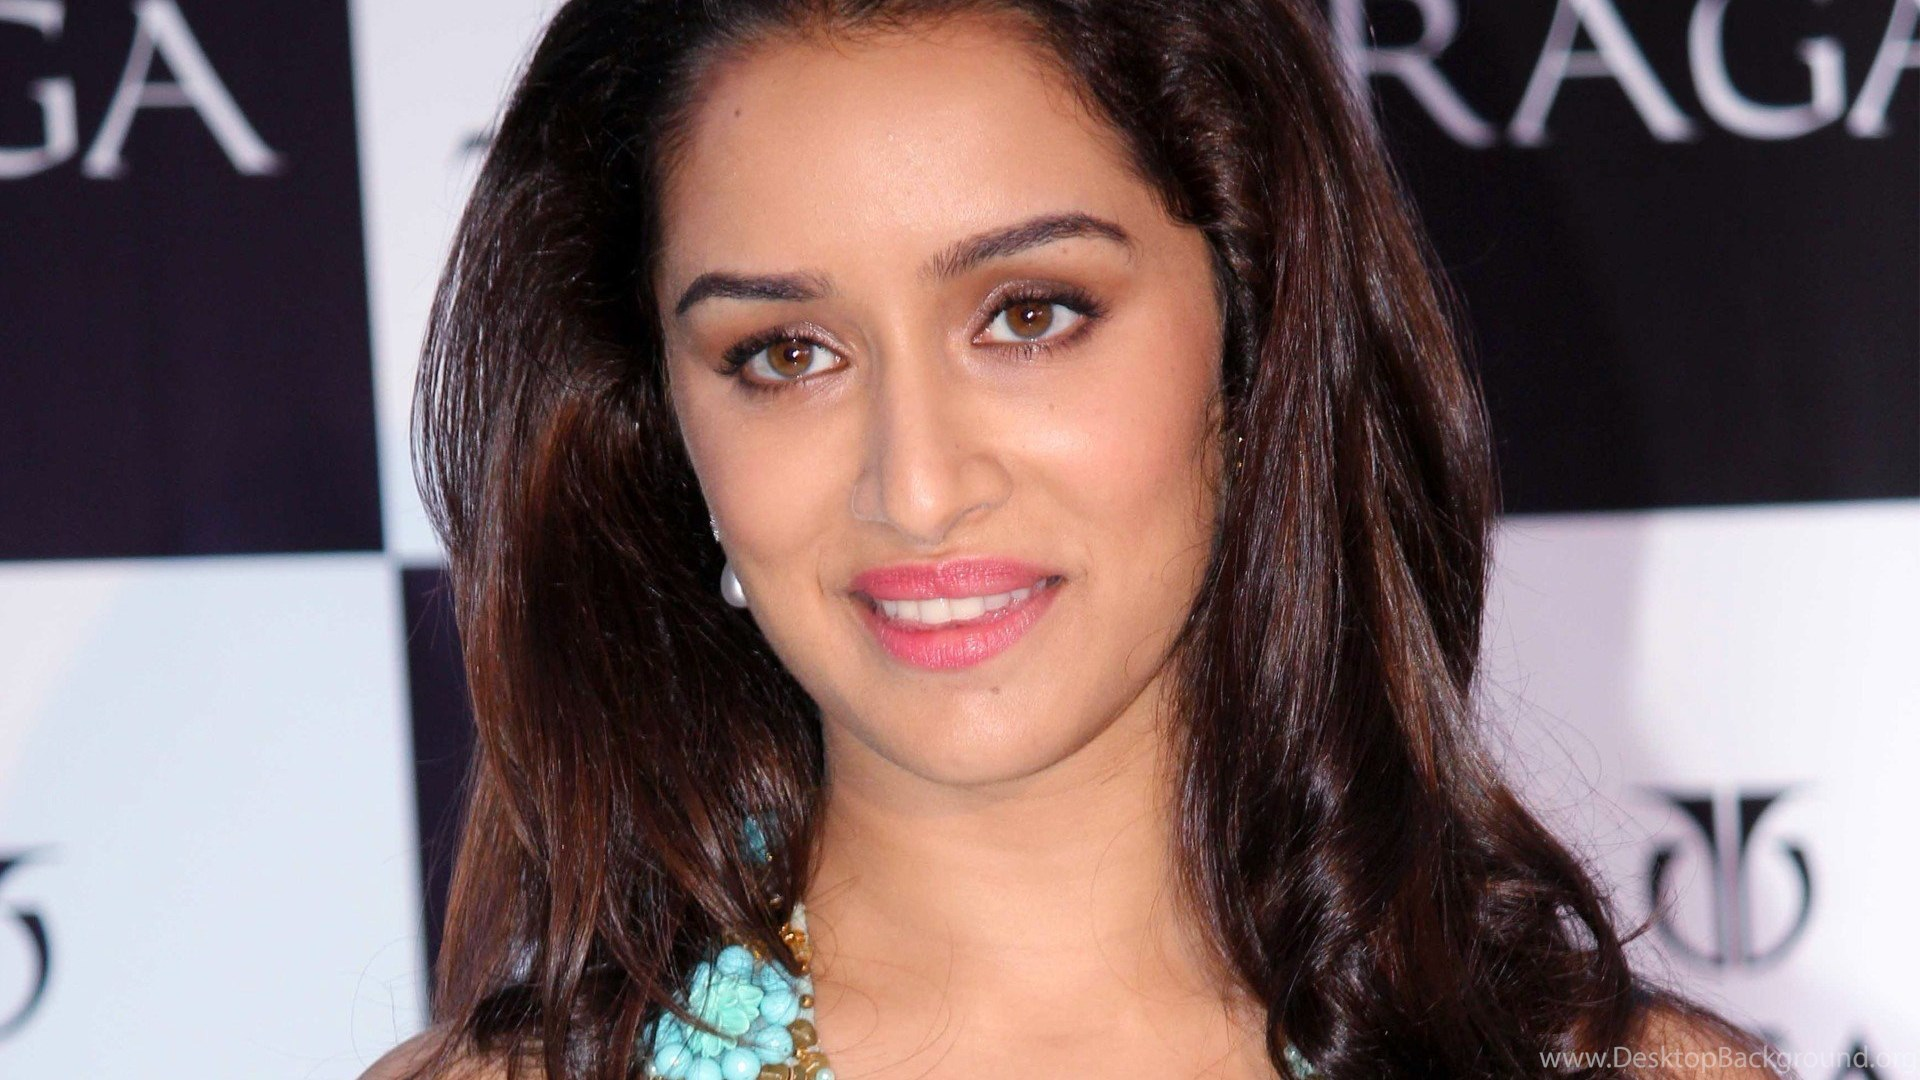 Shraddha Kapoor Hd Wallpapers 4 Wallpapers Z Desktop Background